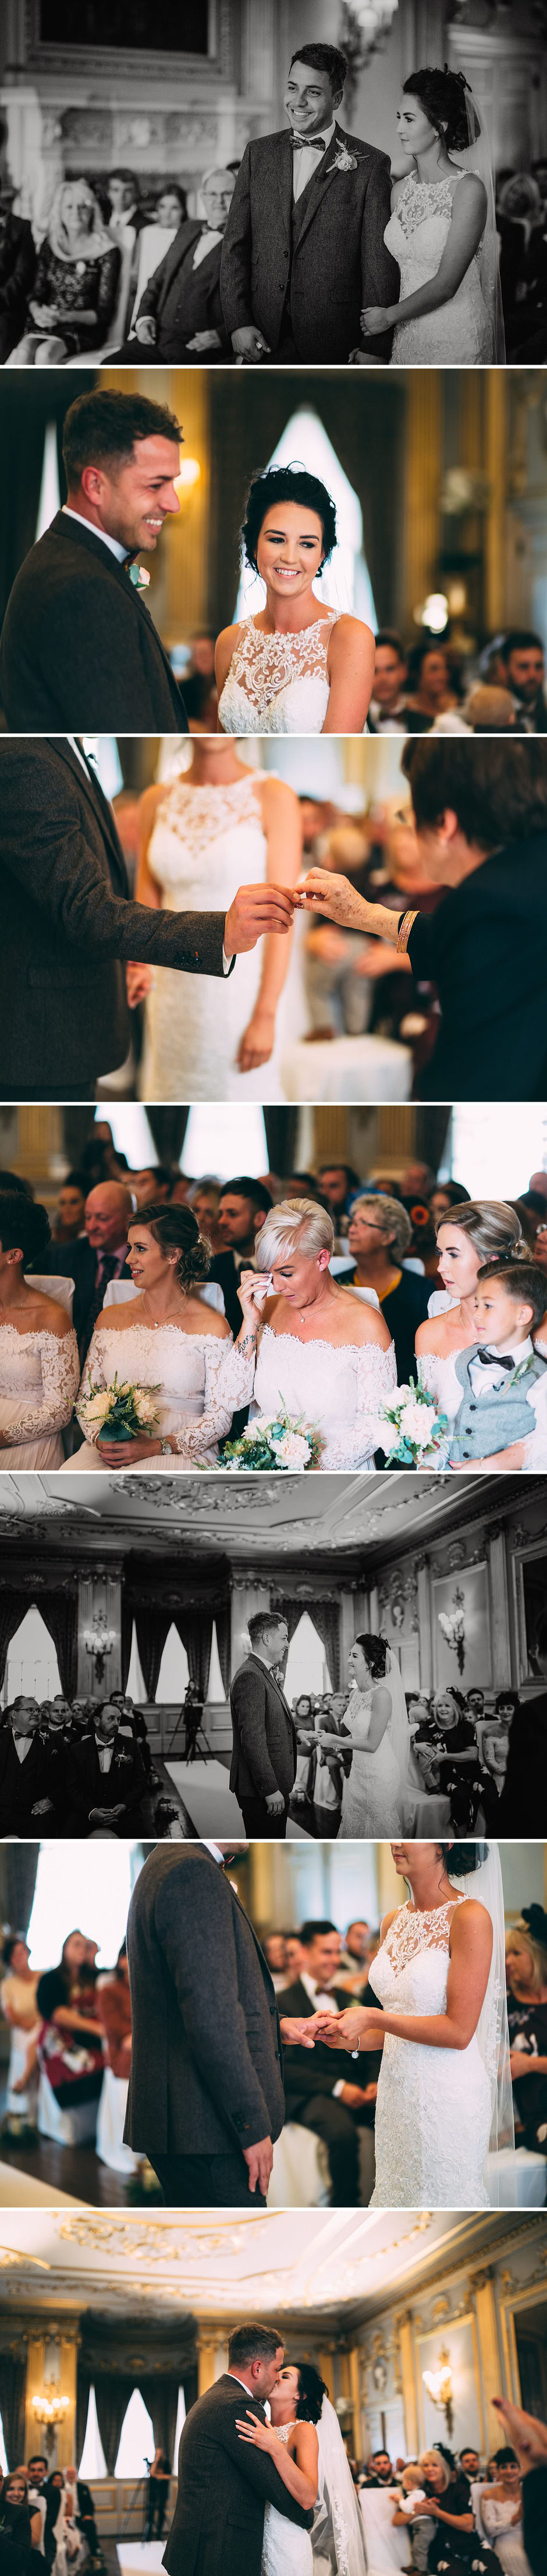 natural photographs of a wedding ceremony